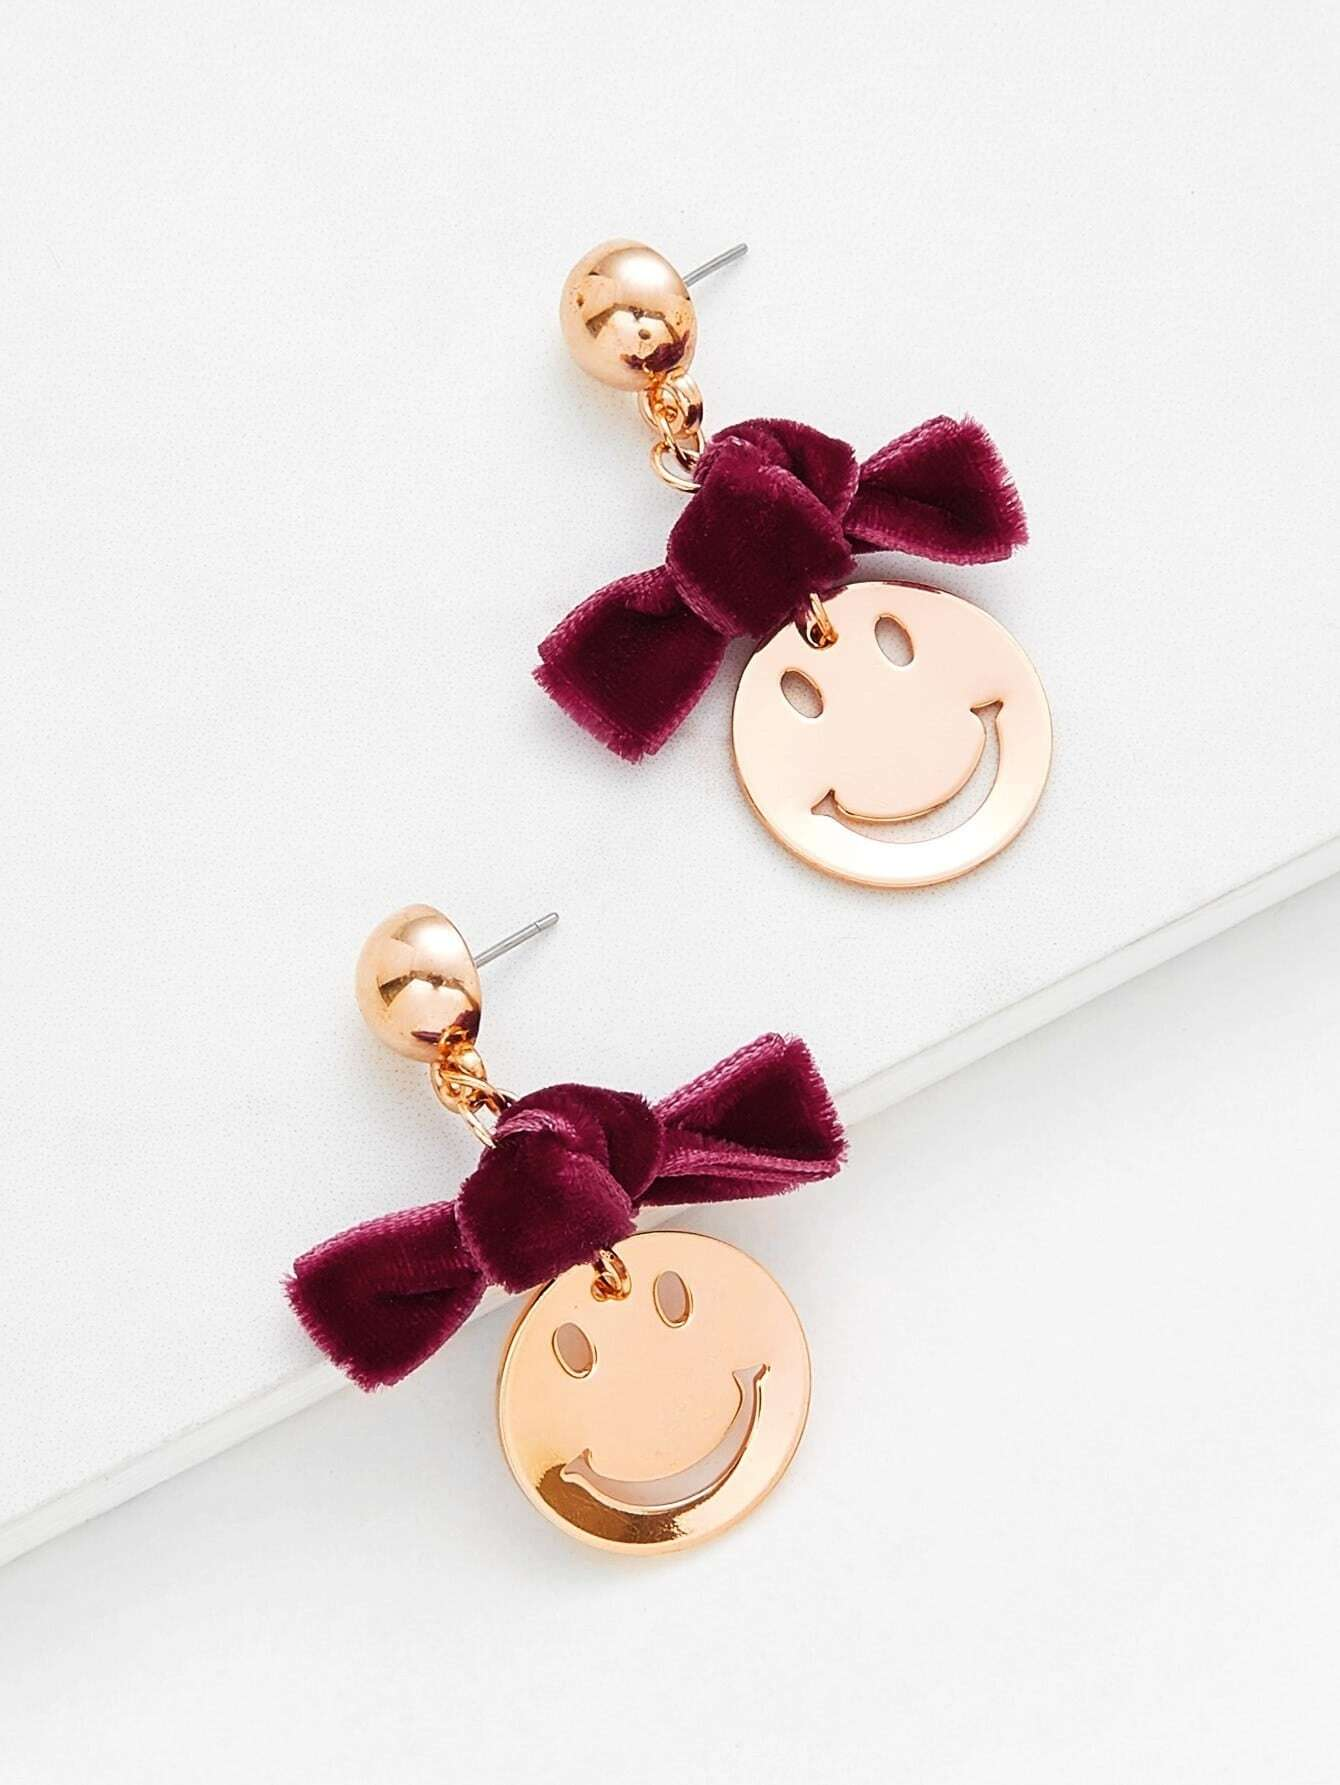 Knot & Hollow Emoji Design Drop Earrings hollow water drop shaped drop earrings